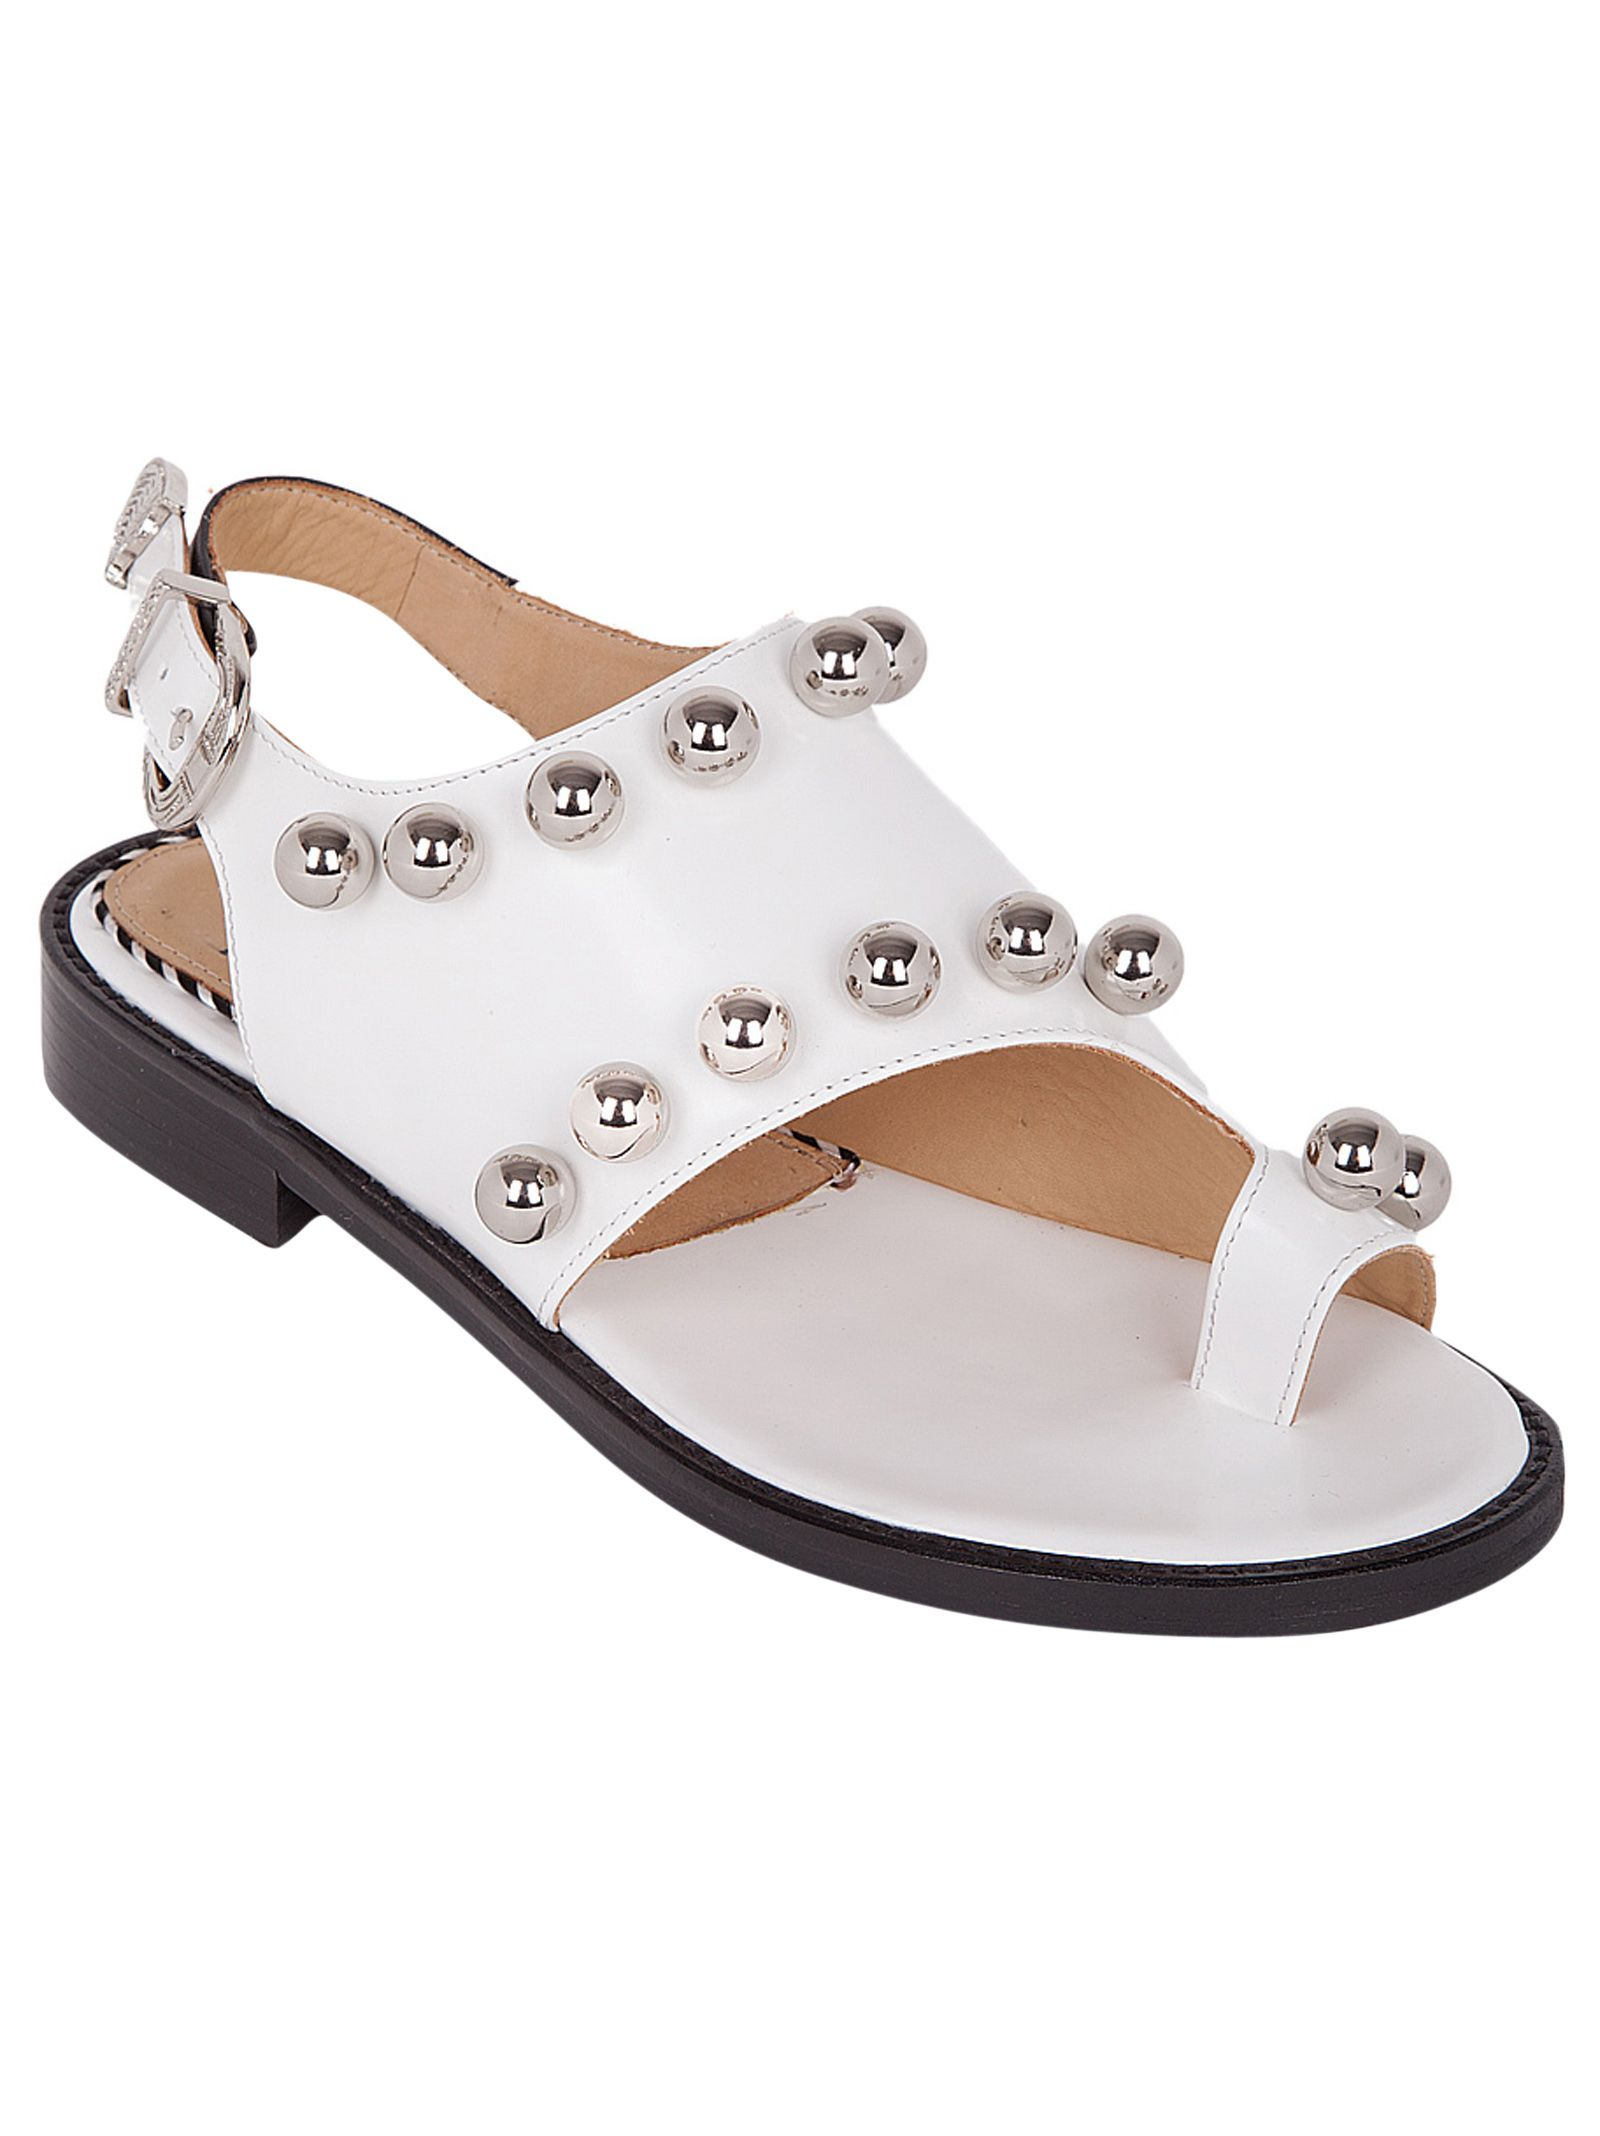 TOGA PULLA Embellished sandals